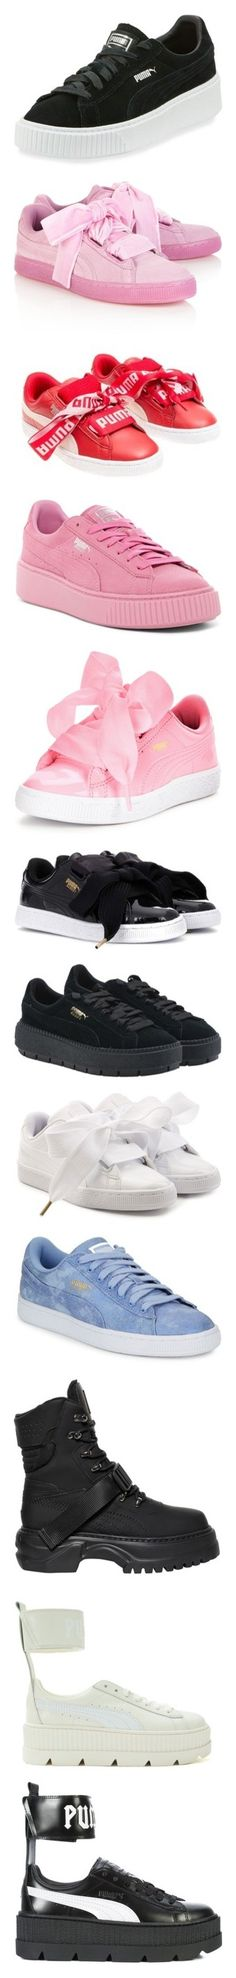 """Shoes B*tch!!"" by stylish-kpop on Polyvore featuring shoes, sneakers, black, black platform shoes, black suede shoes, lace up sneakers, puma trainers, puma shoes, heart shoes et laced shoes"